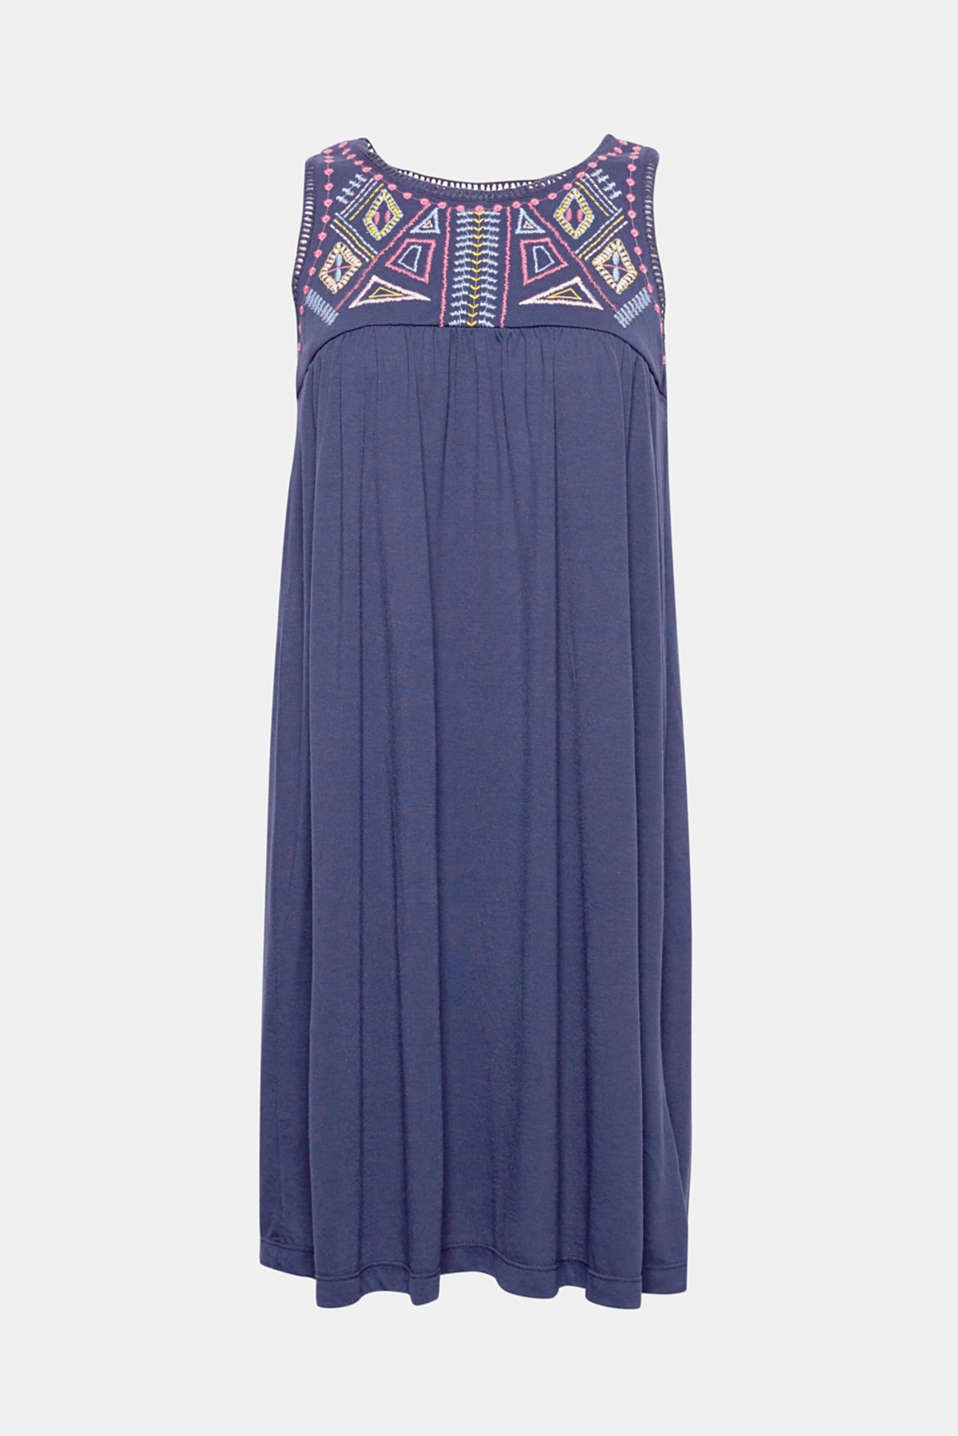 Summer styles can be so beautiful: this airy jersey tent dress with a colourfully embroidered neckline yoke exudes stylish tribal vibes.